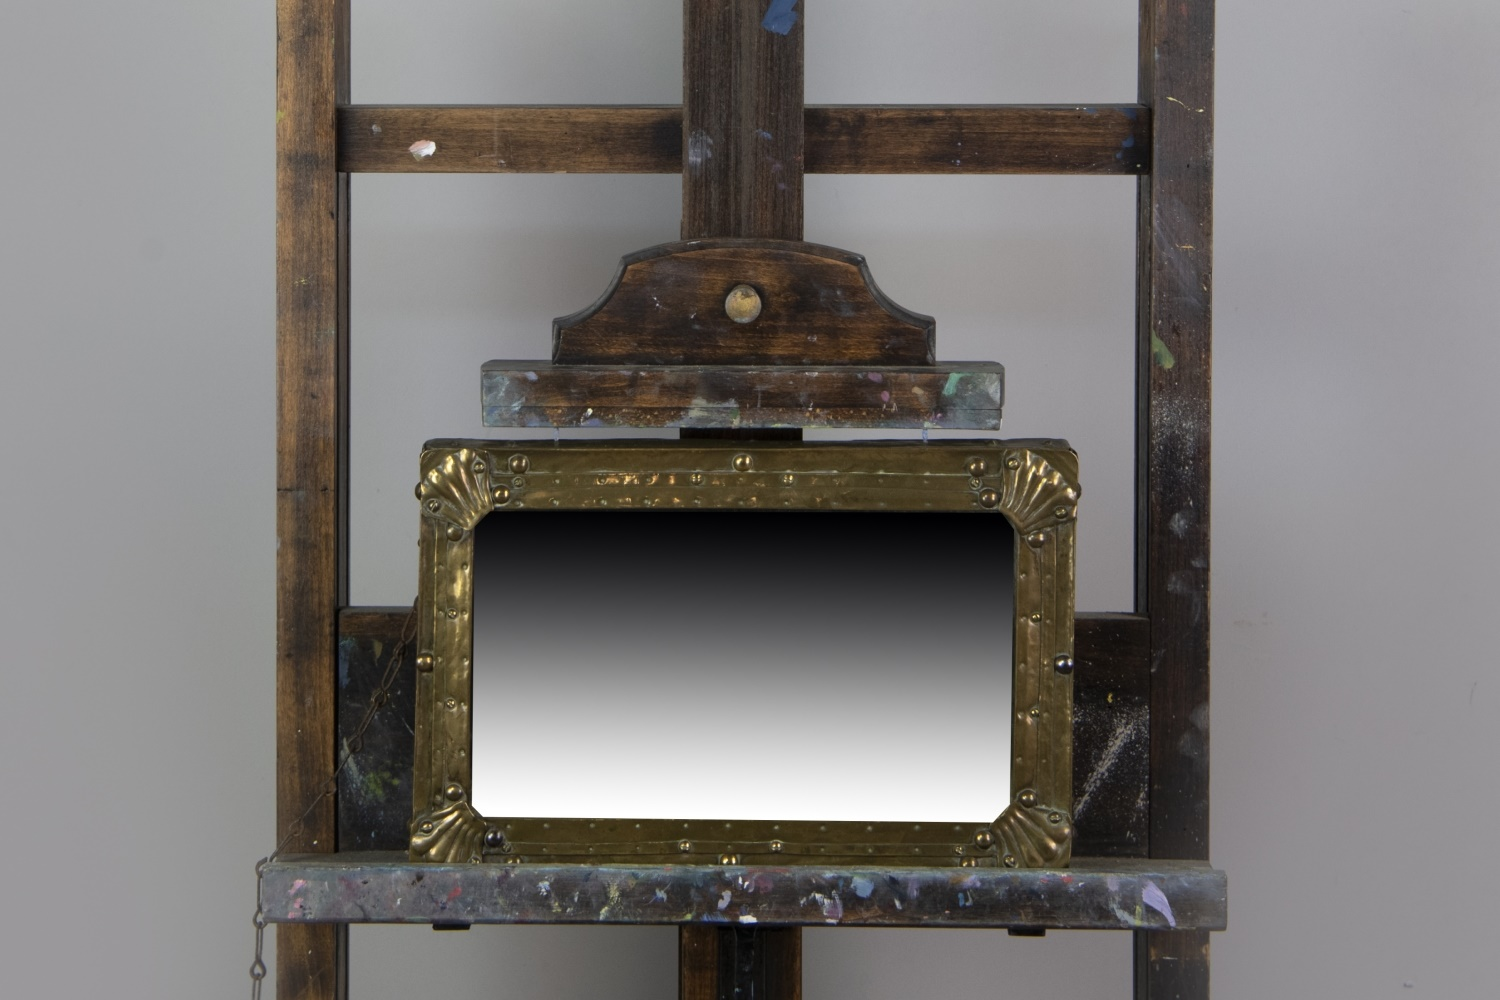 A LATE 19TH CENTURY BRASS WALL MIRROR